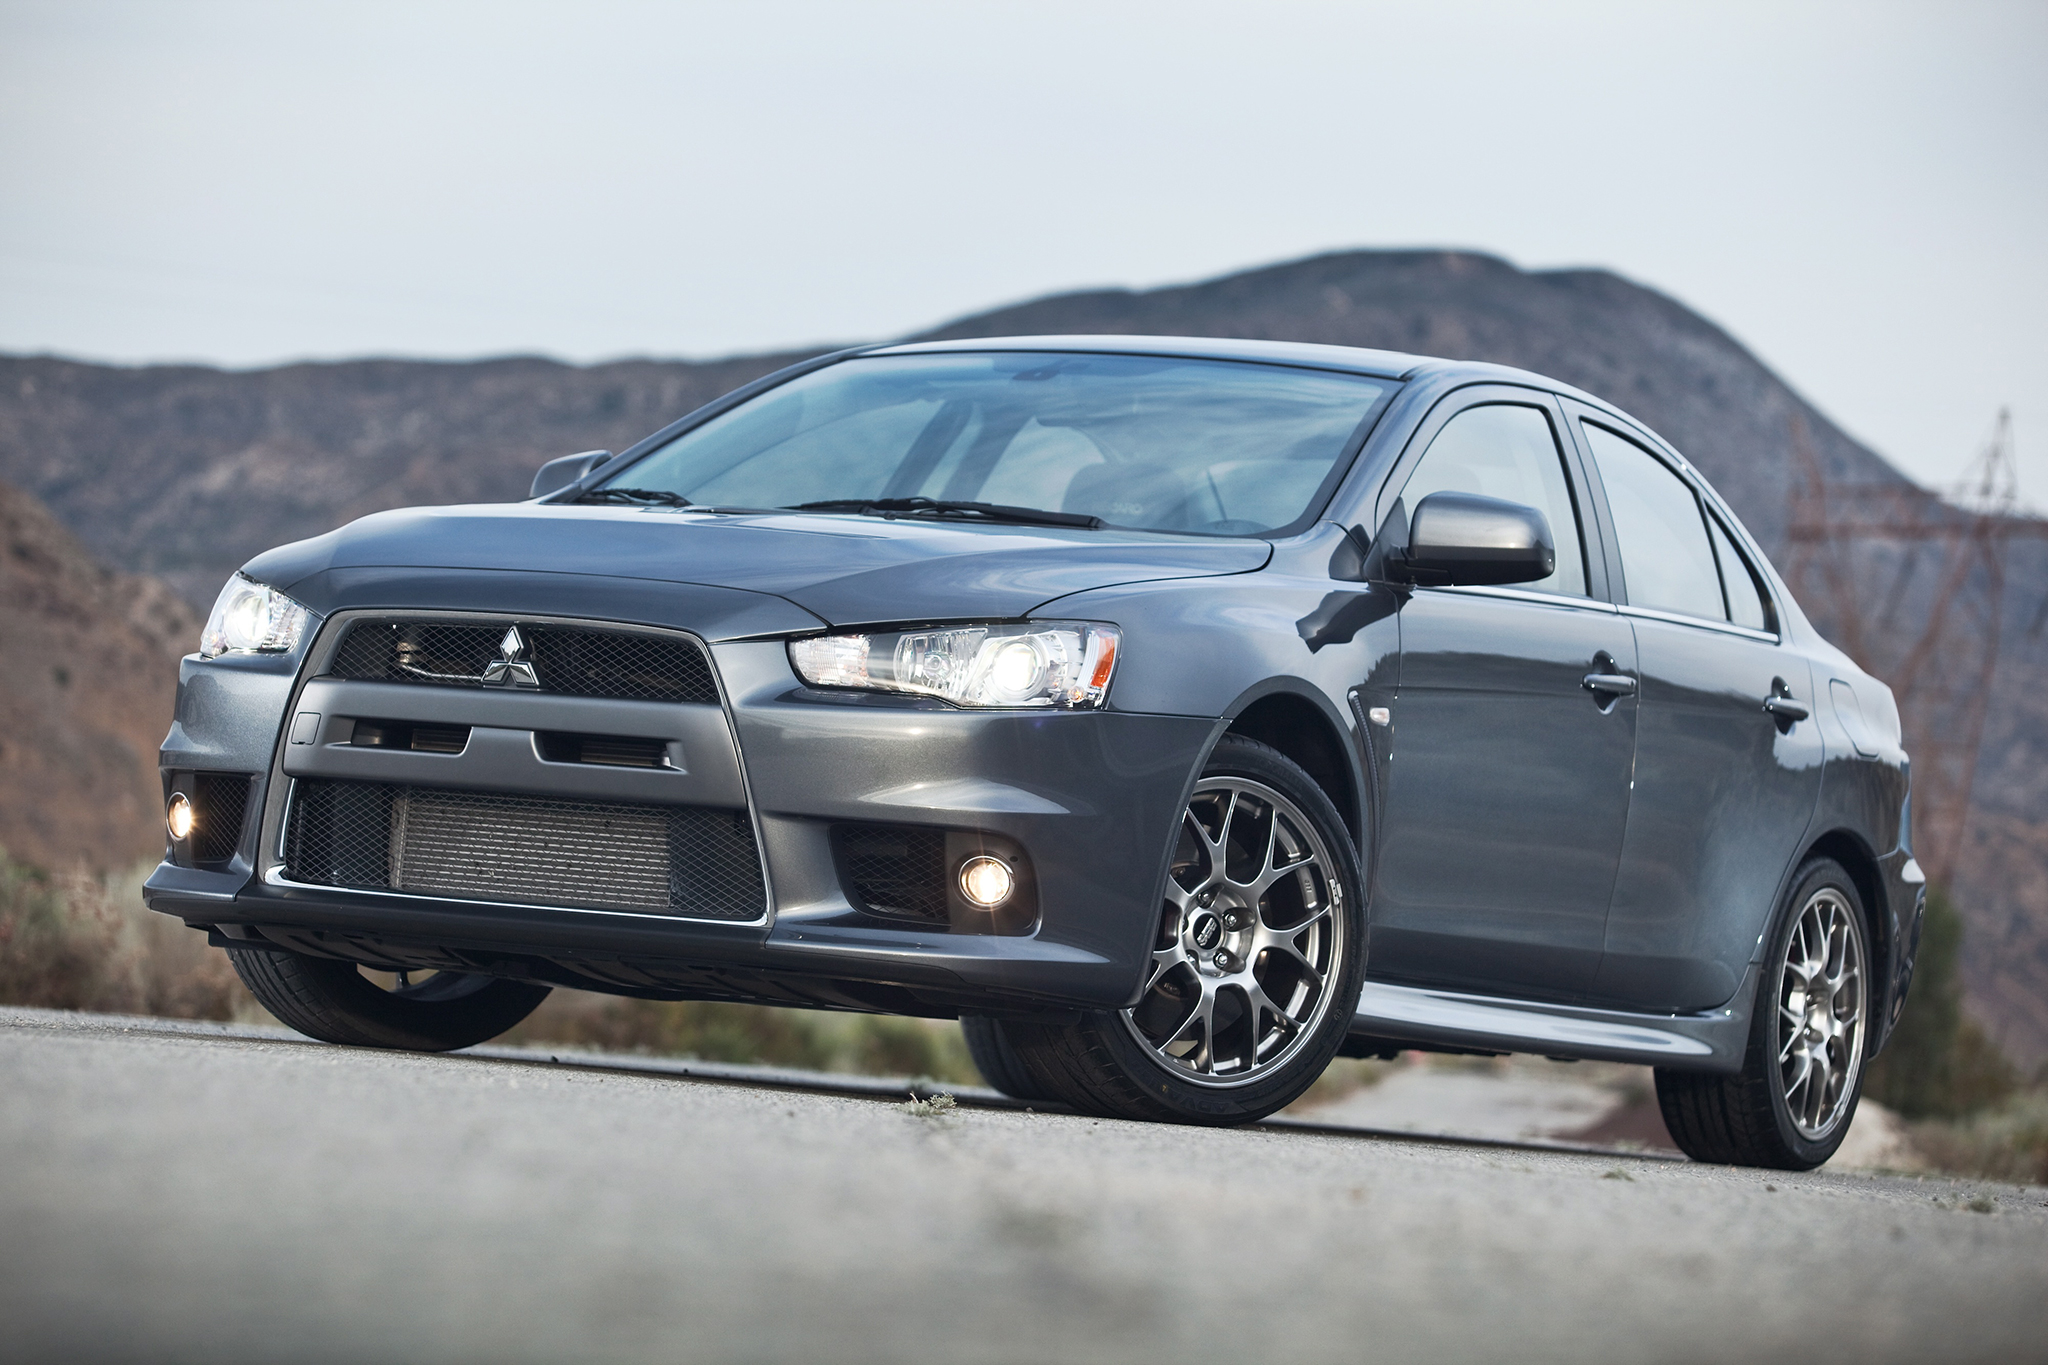 TOTD: Should the Mitsubishi Evo Successor Get a Different Name?